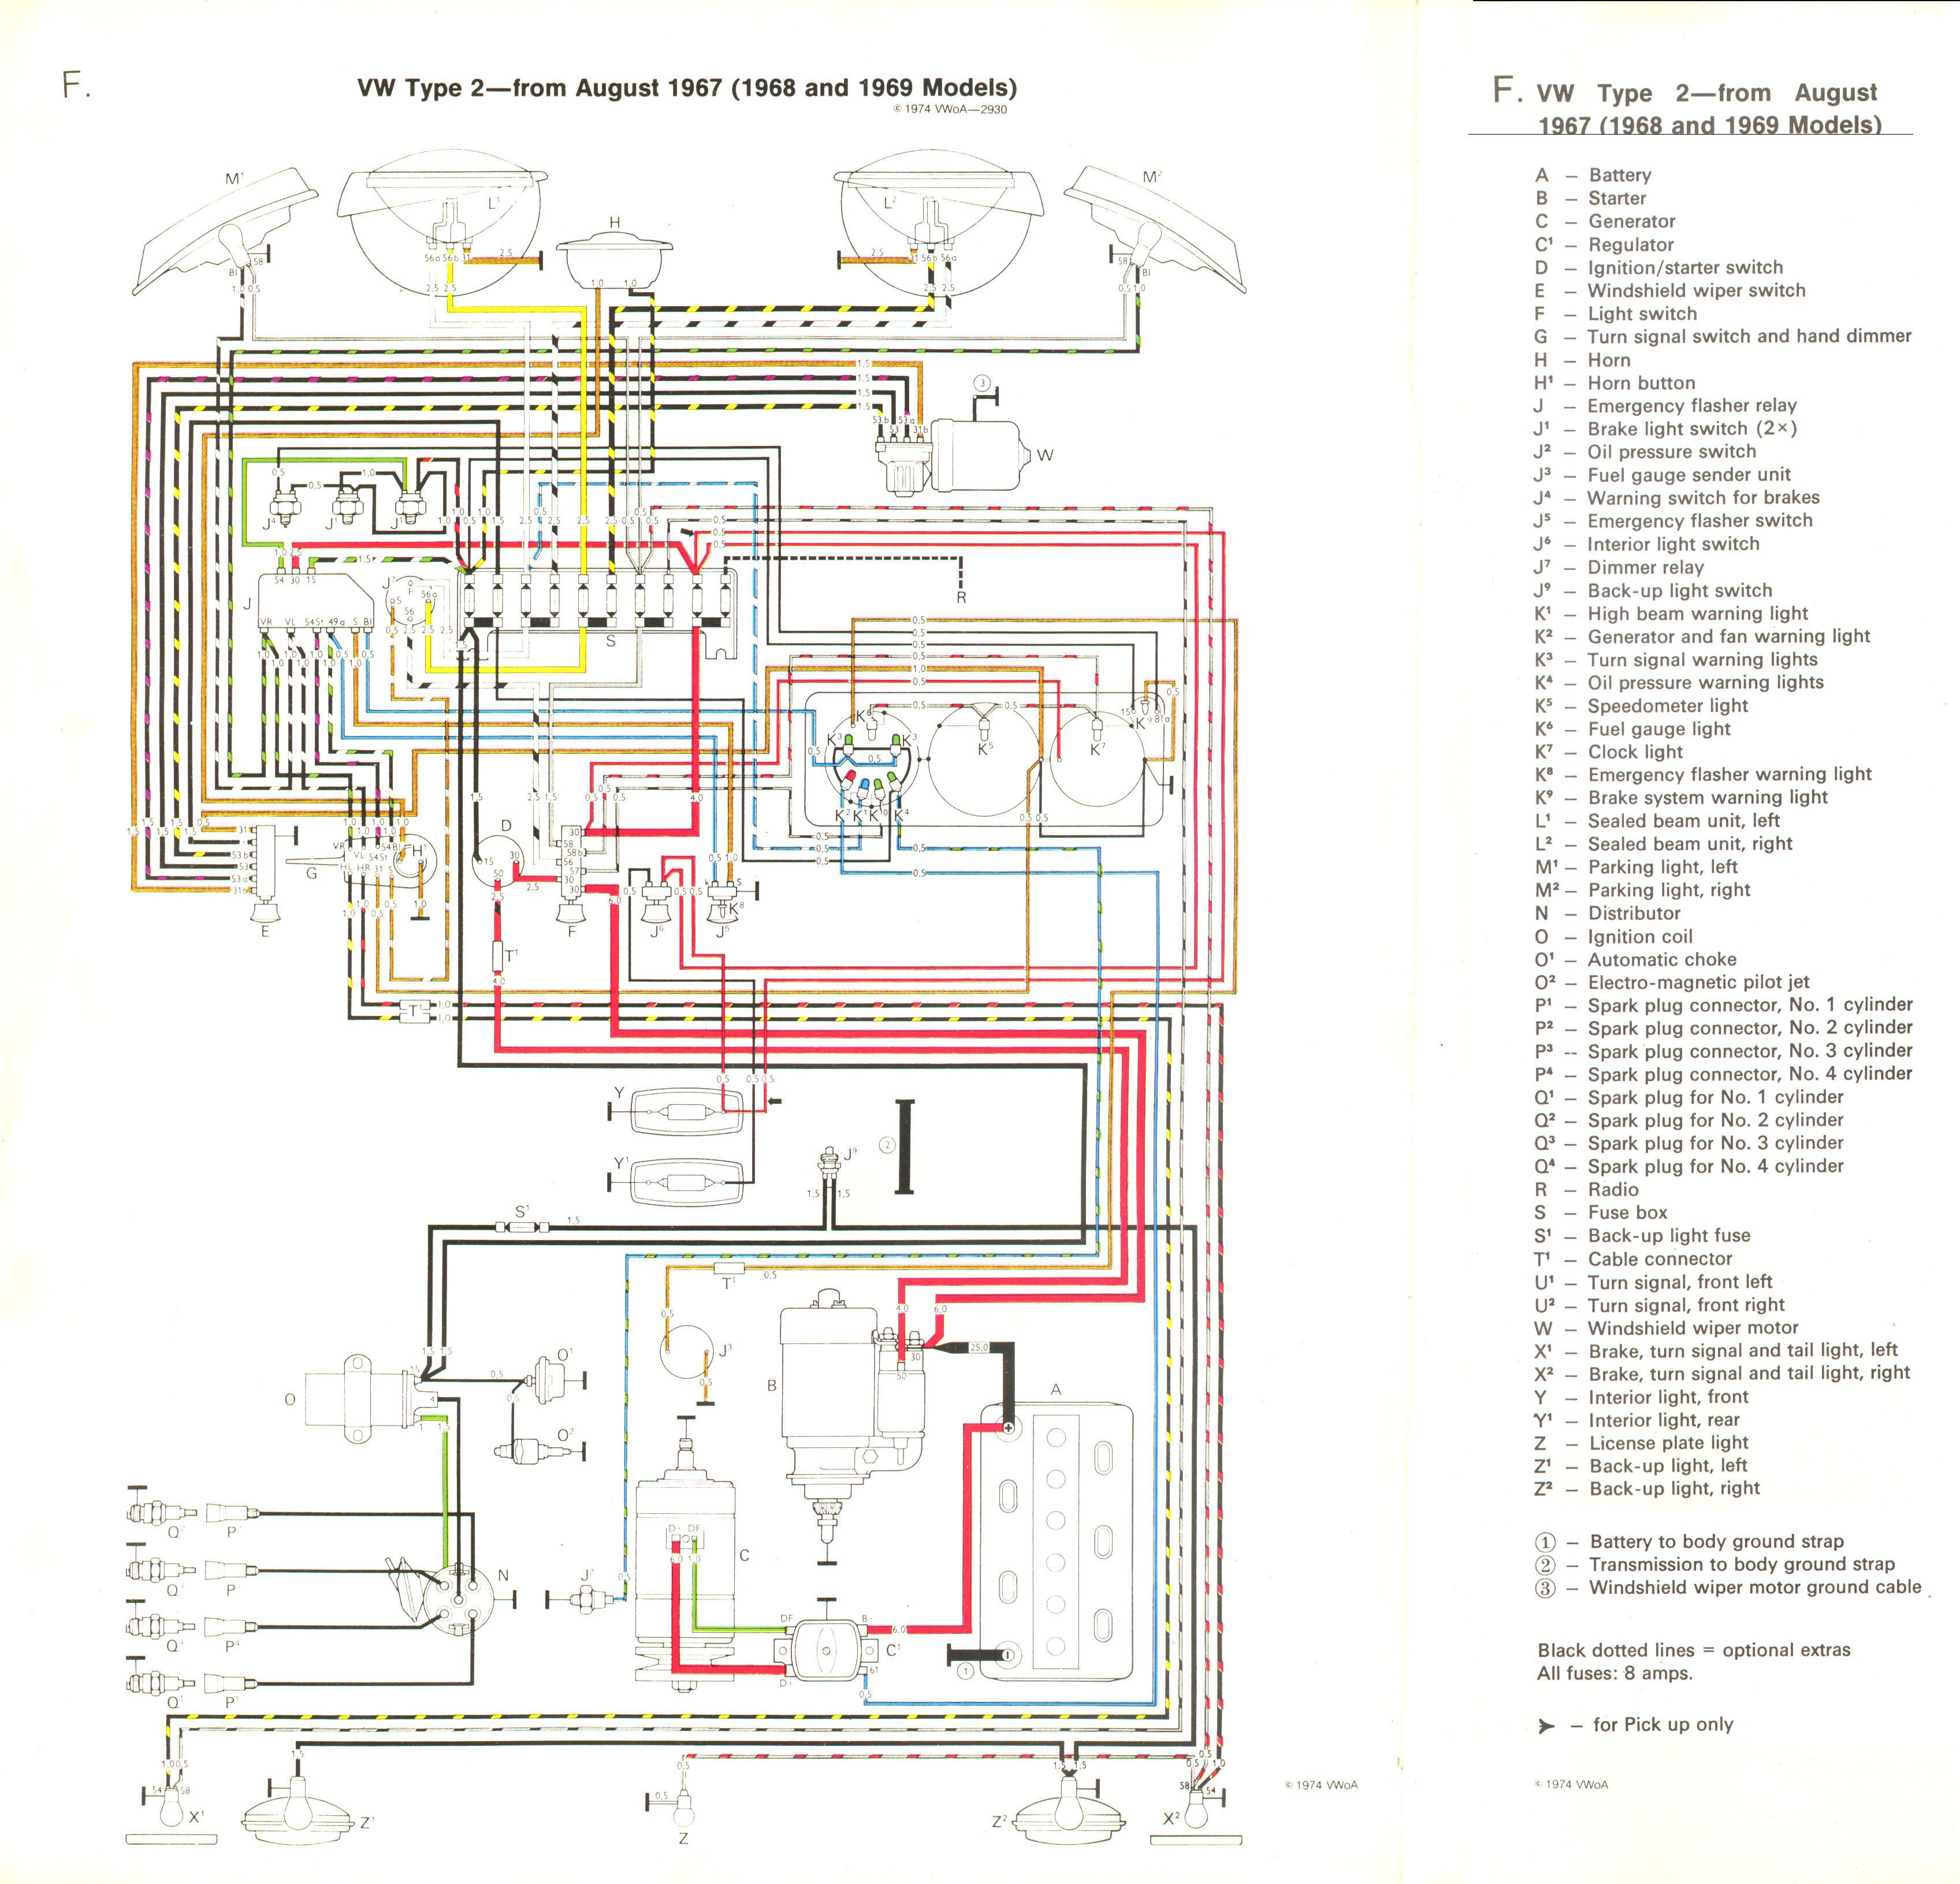 vw beetle wiring diagram image wiring 1968 vw beetle fuse box diagram 1968 auto wiring diagram schematic on 1968 vw beetle wiring